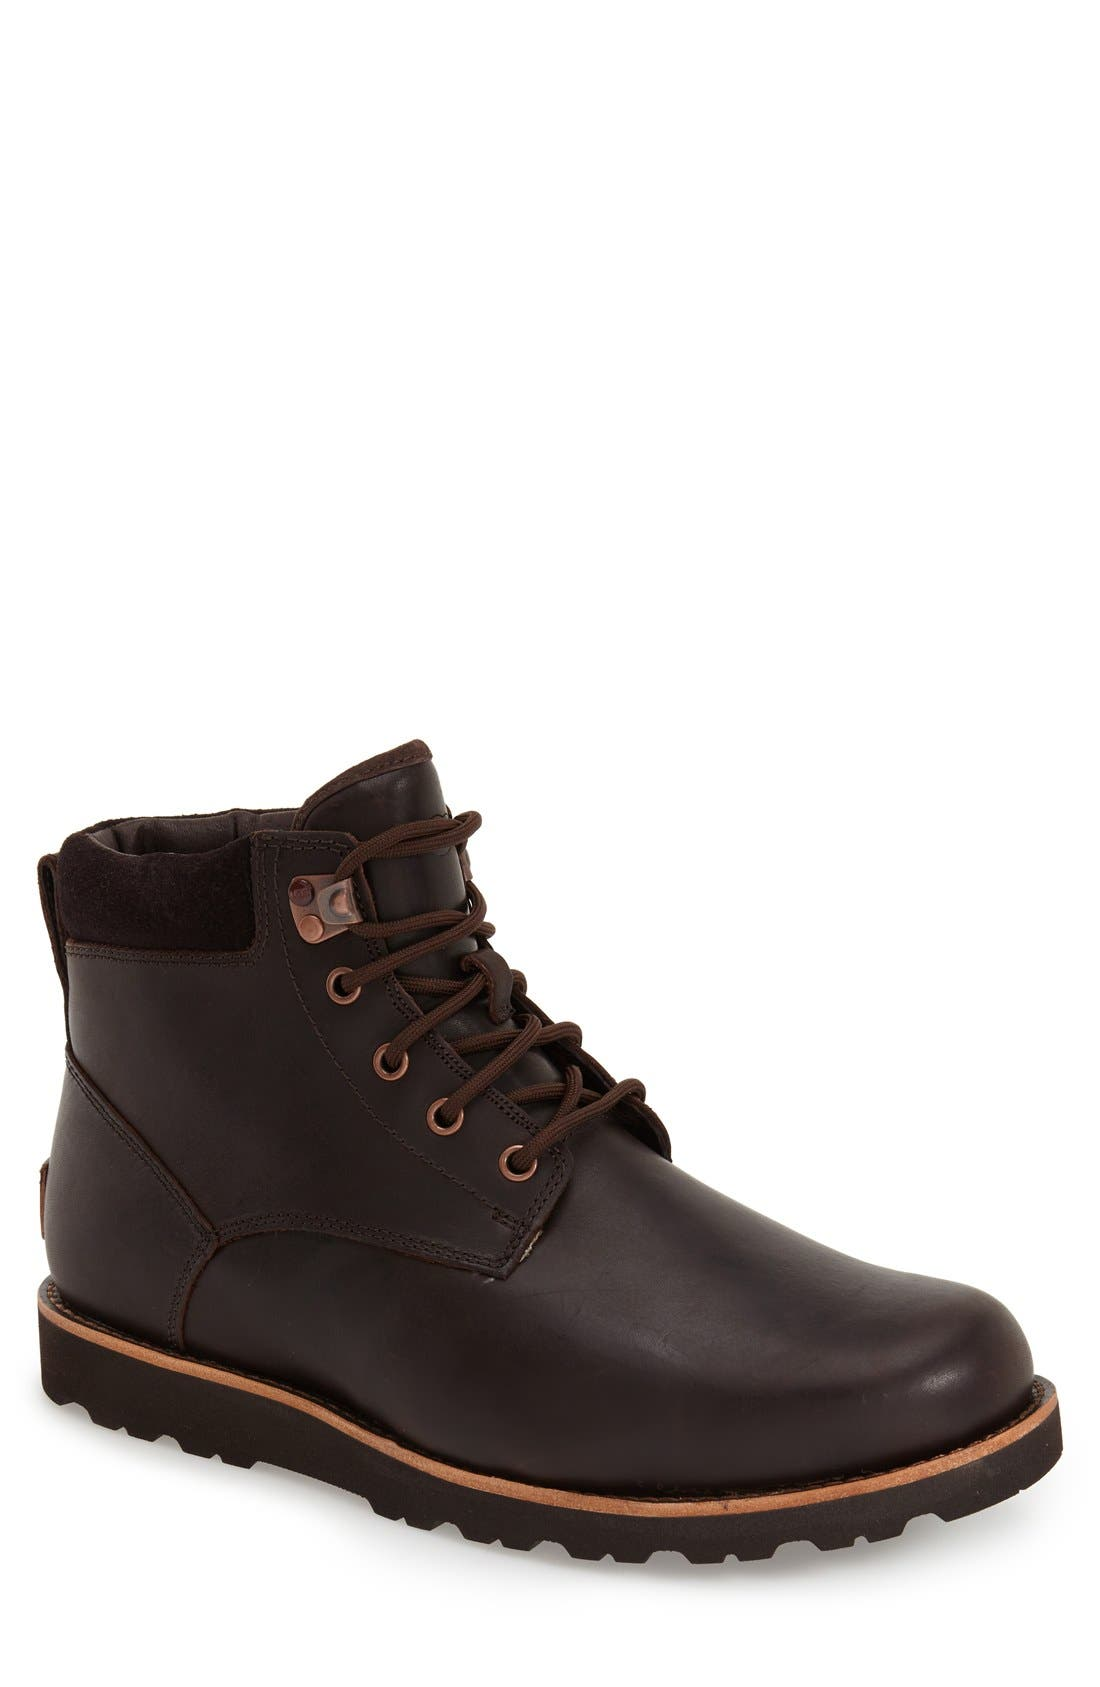 UGG<SUP>®</SUP>, Seton Waterproof Chukka Boot, Main thumbnail 1, color, STOUT